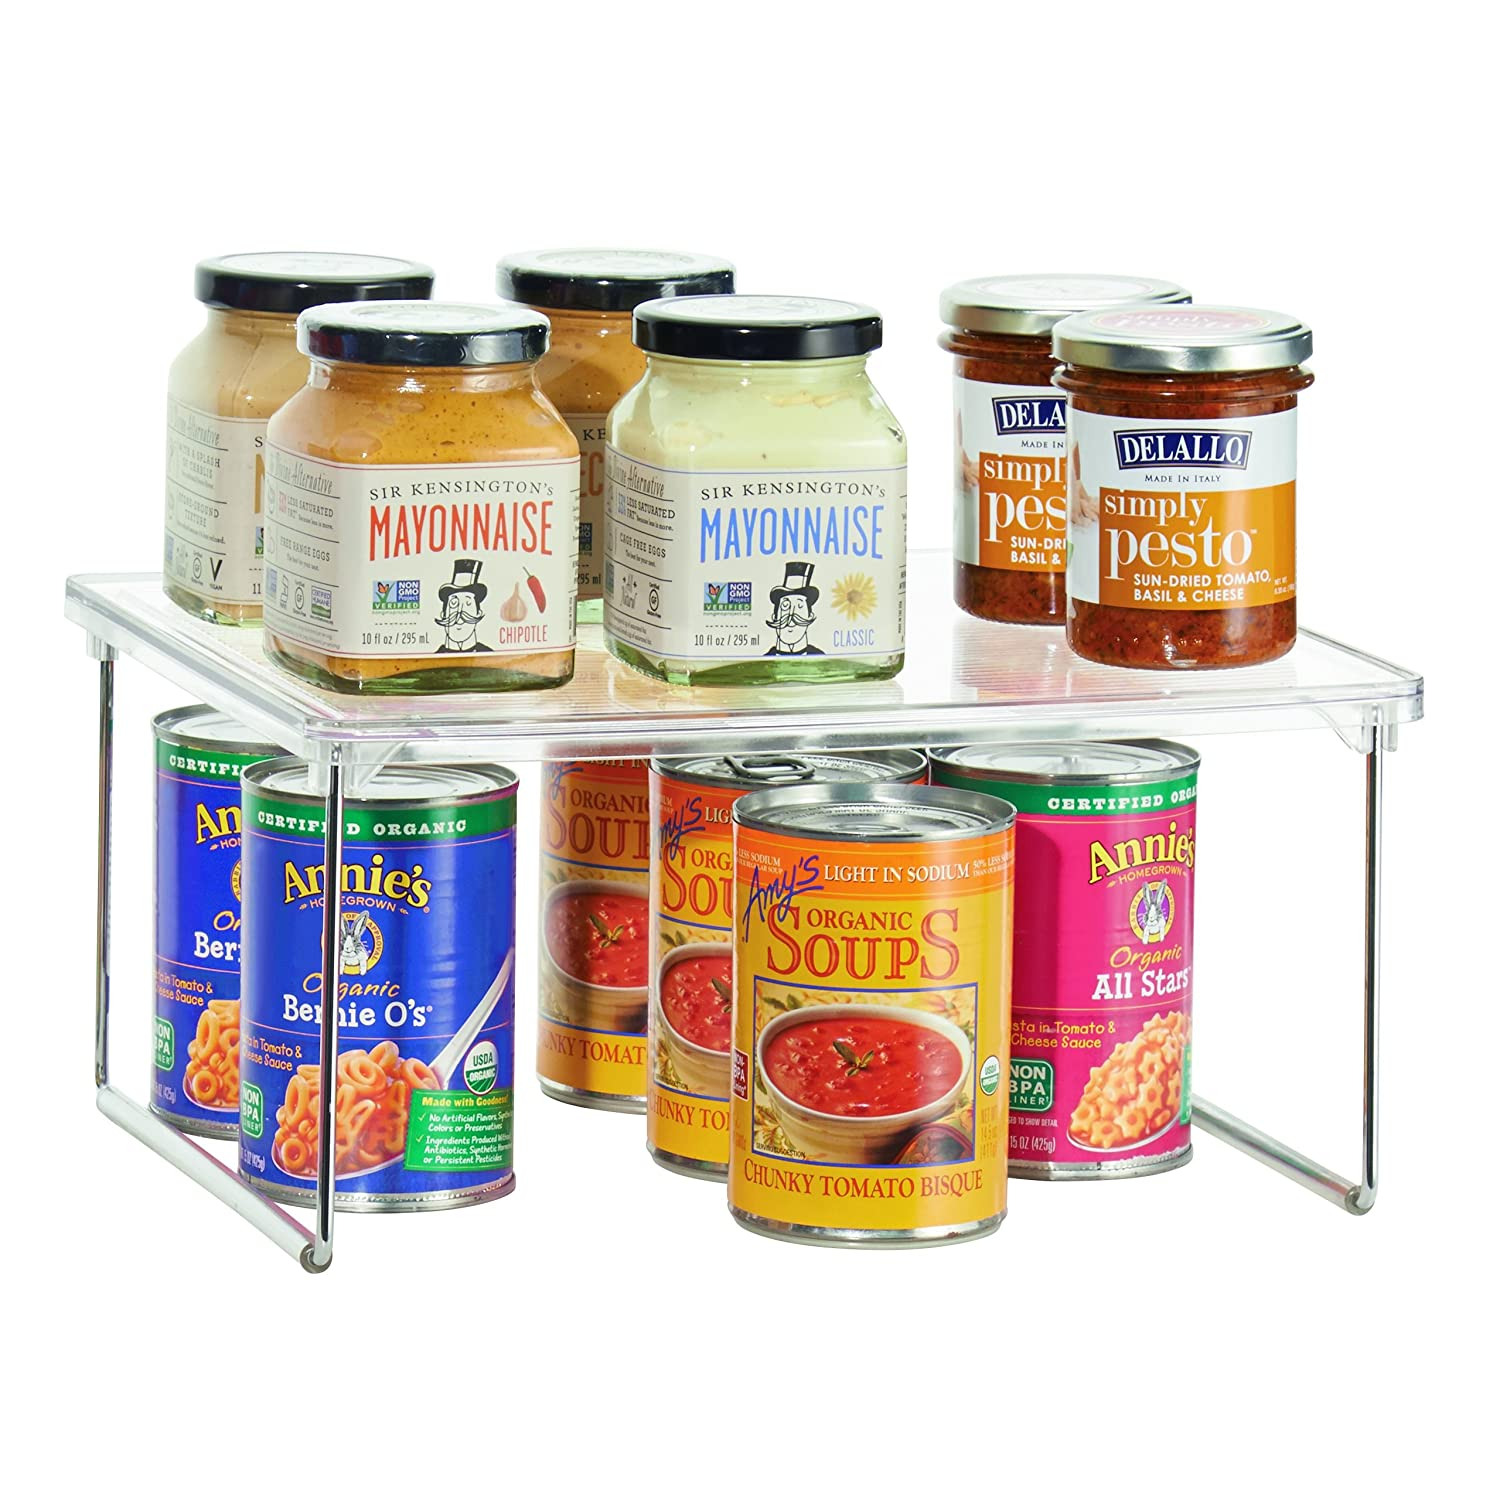 InterDesign Linus Pantry Shelving Unit, Kitchen Shelf Ideal for Ingredients, Jars and Utensils, Plastic, Clear, 30.5 x 25.5 x 15.2 cm